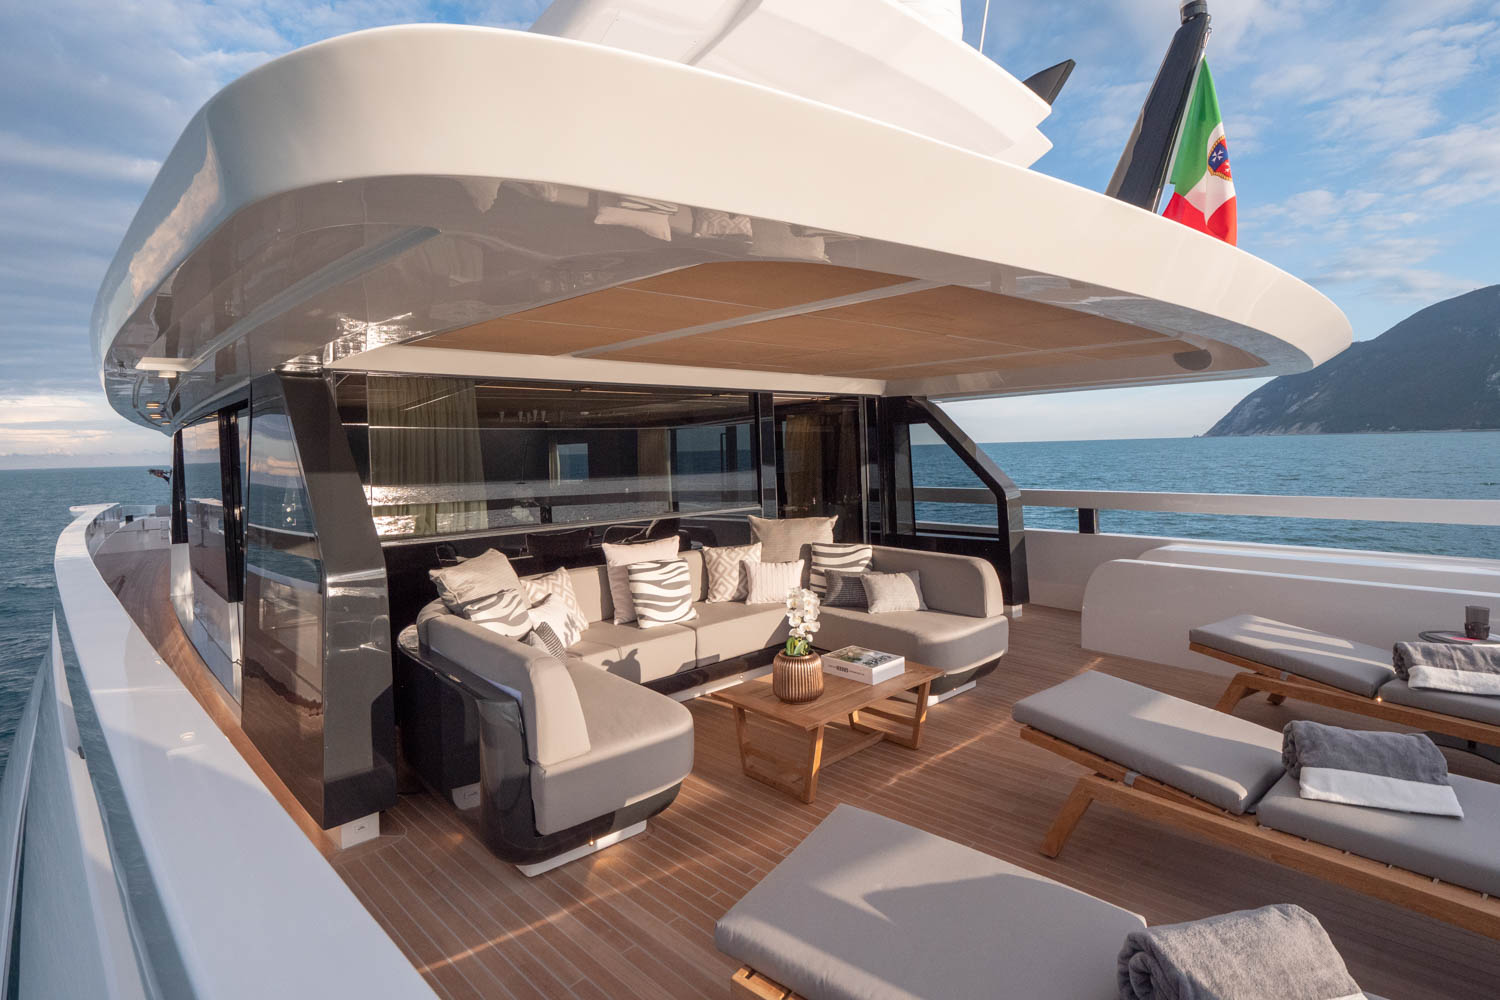 Extra 93 Wide Angle Yacht